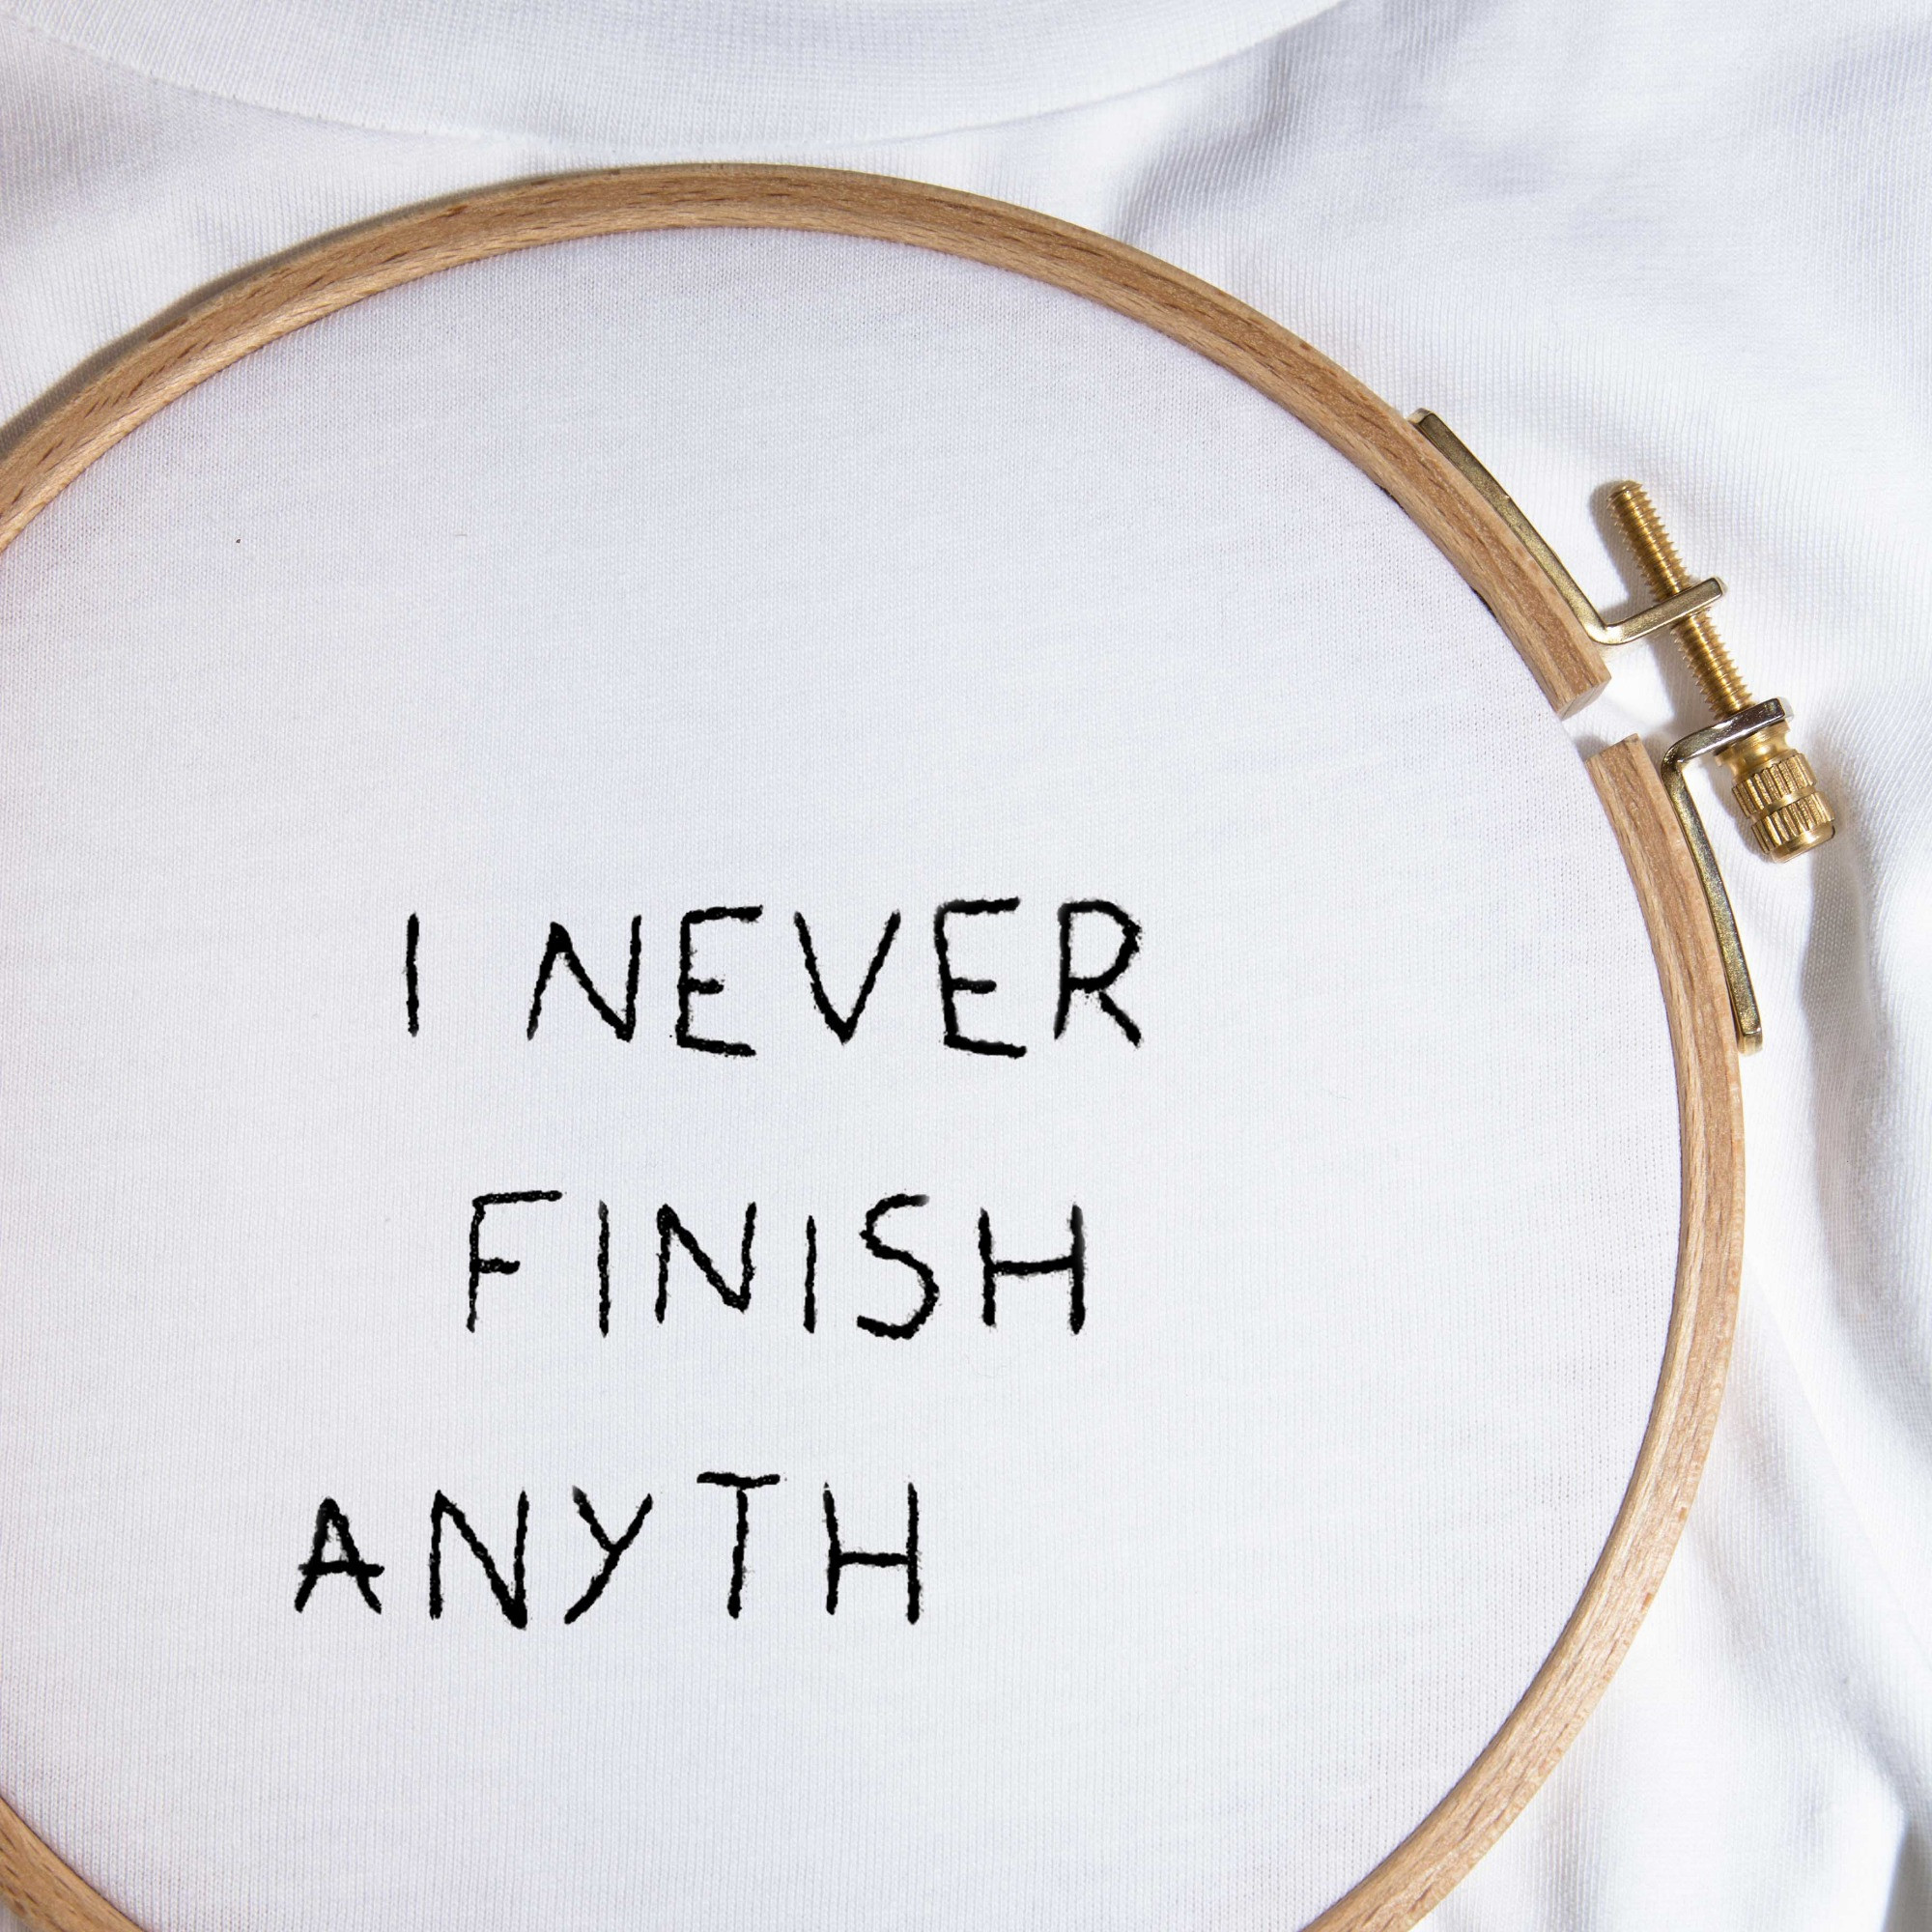 The I NEVER FINISH tee